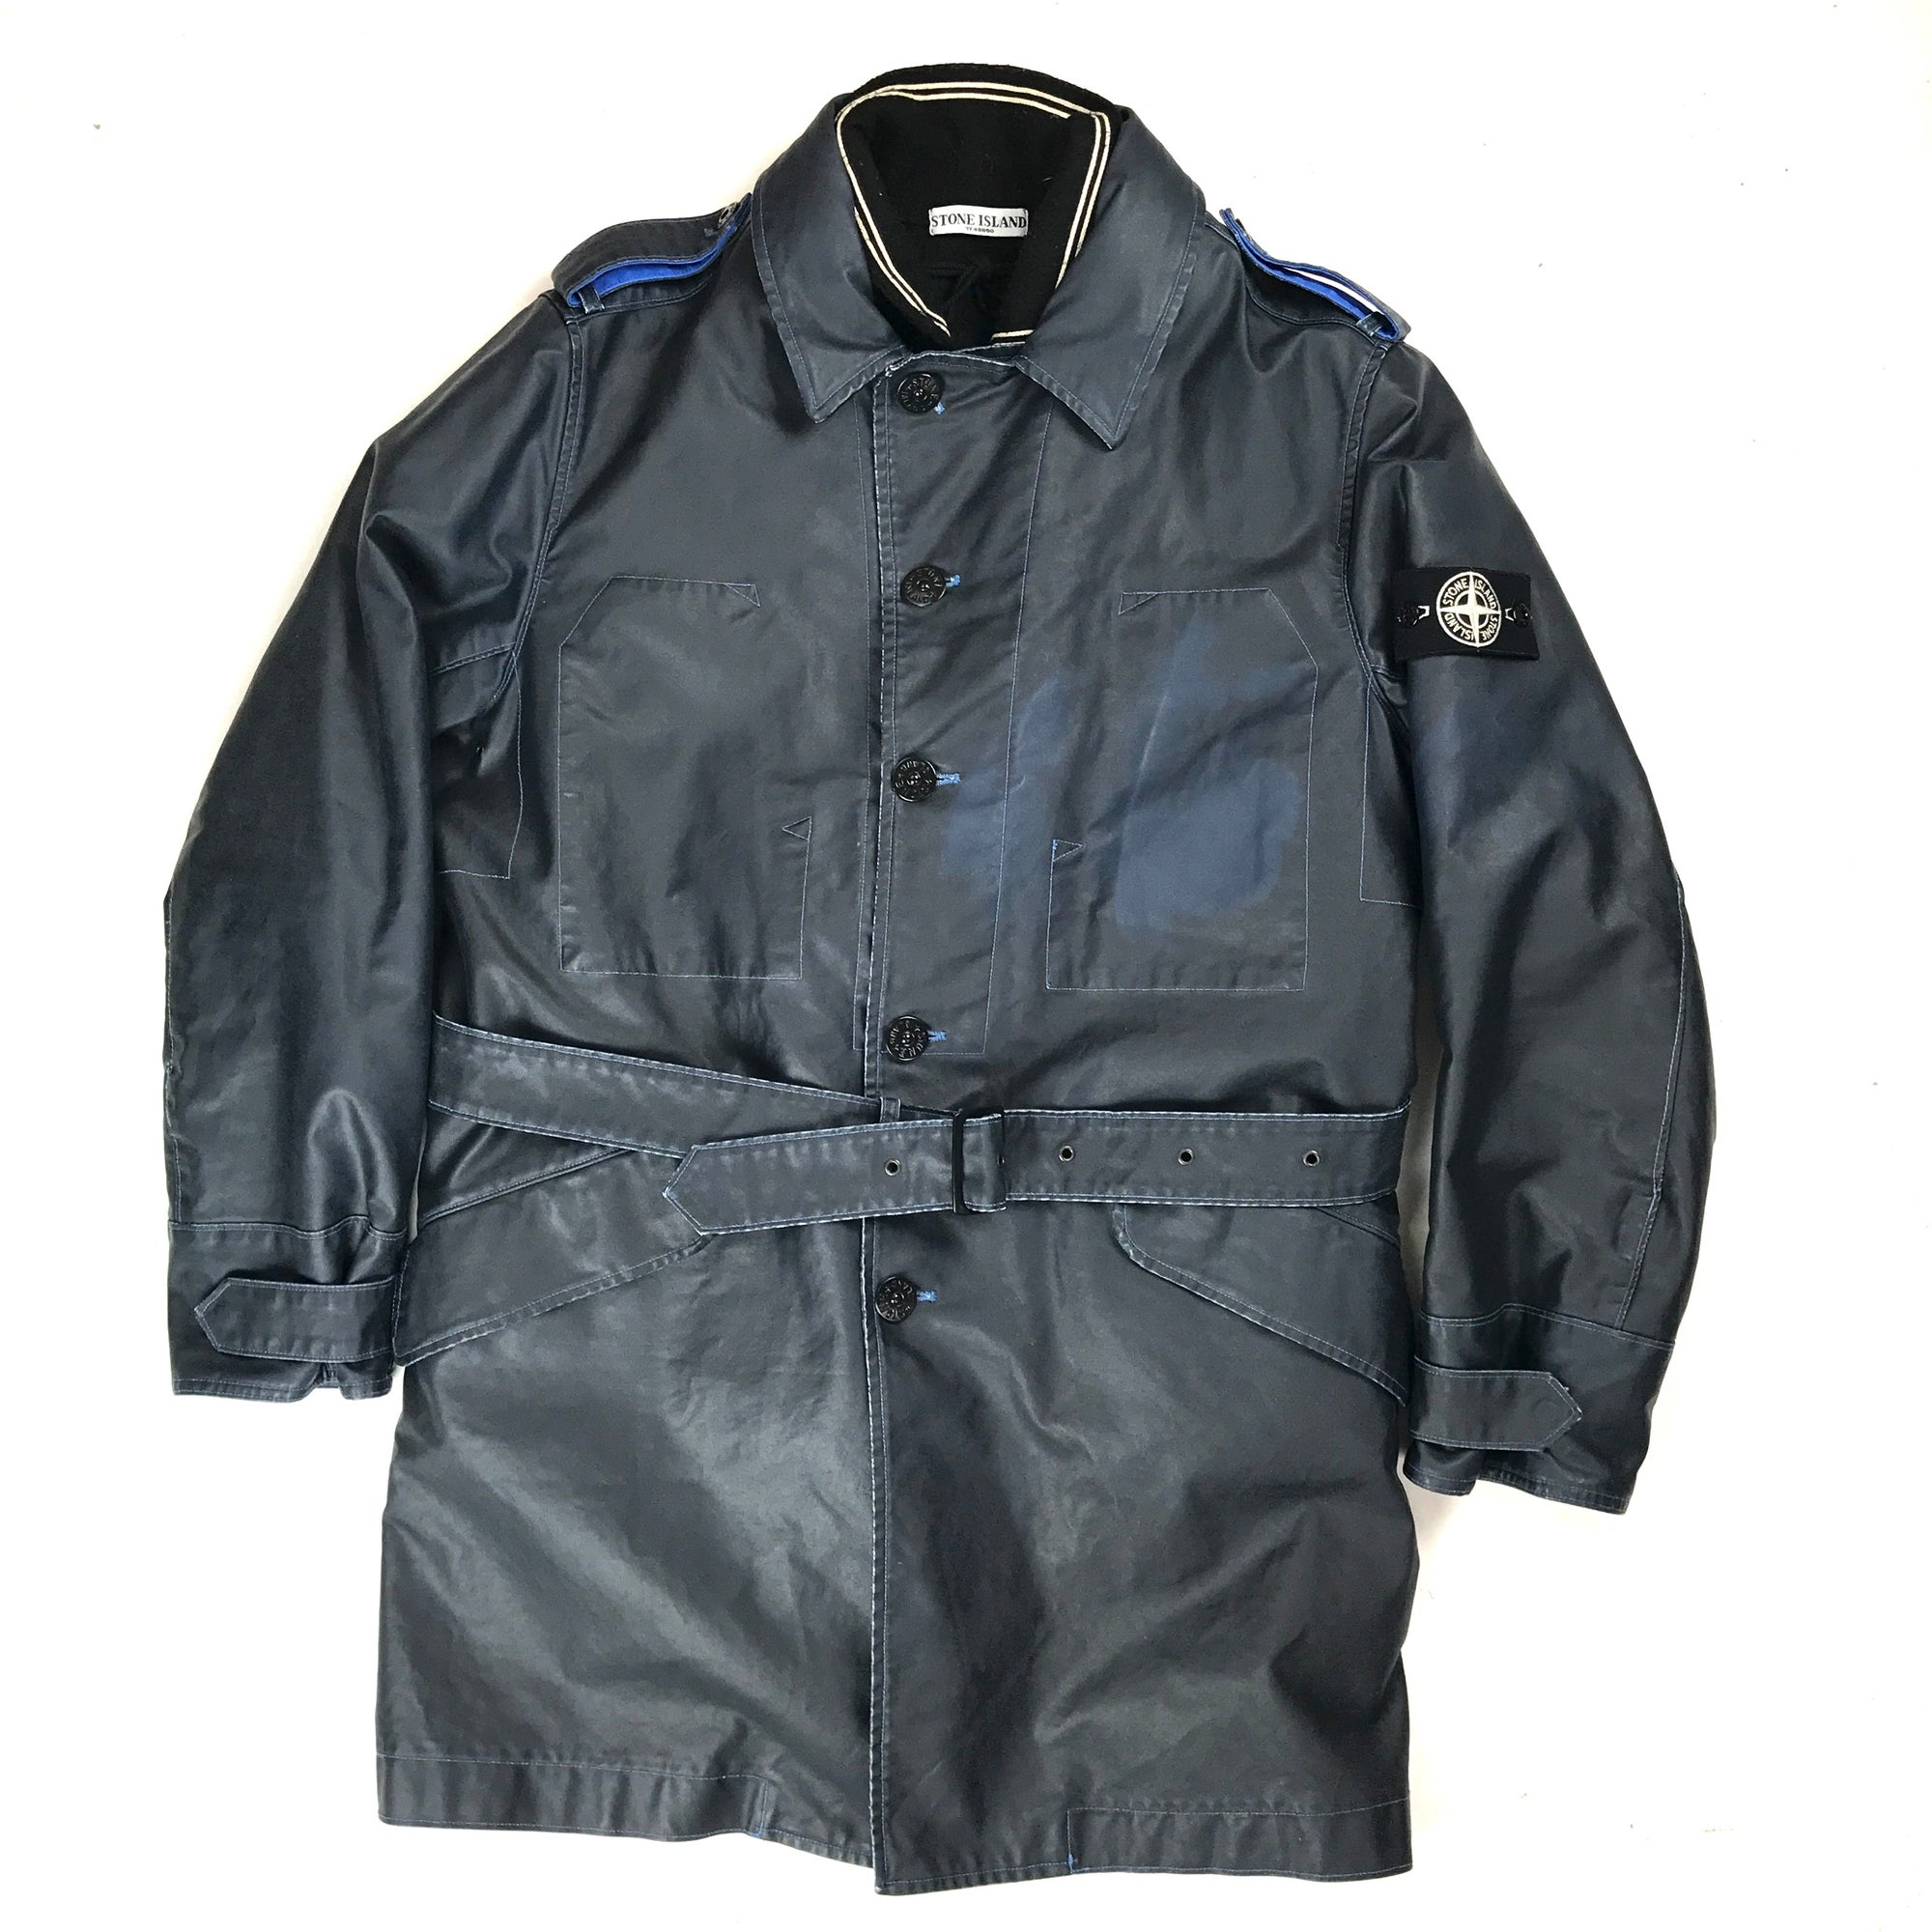 hottest sale 2020 100% authentic Stone Island AW/2008 Waxed Ice Trench Coat